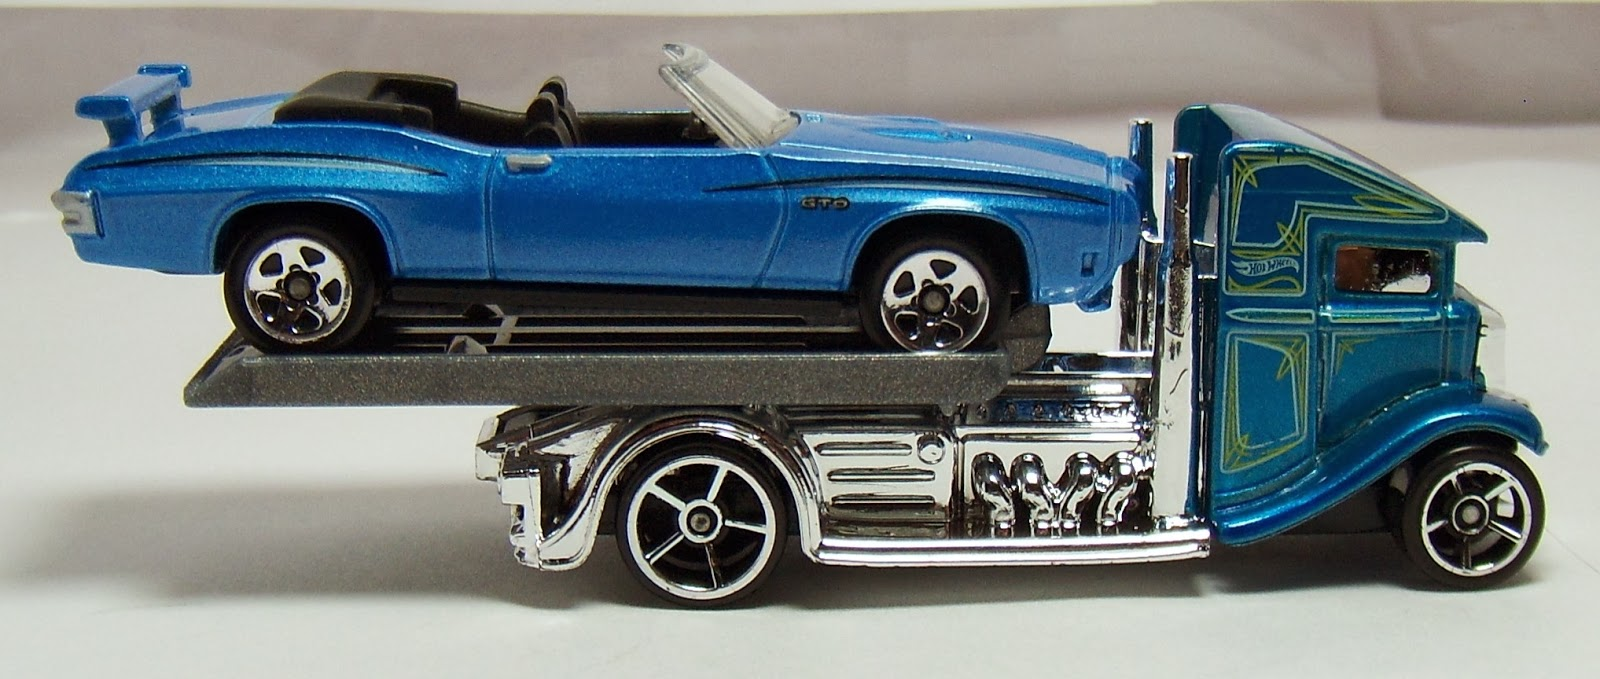 Just add a metal base to future variations and it ll be one perfect flatbed truck for the hot wheels brand